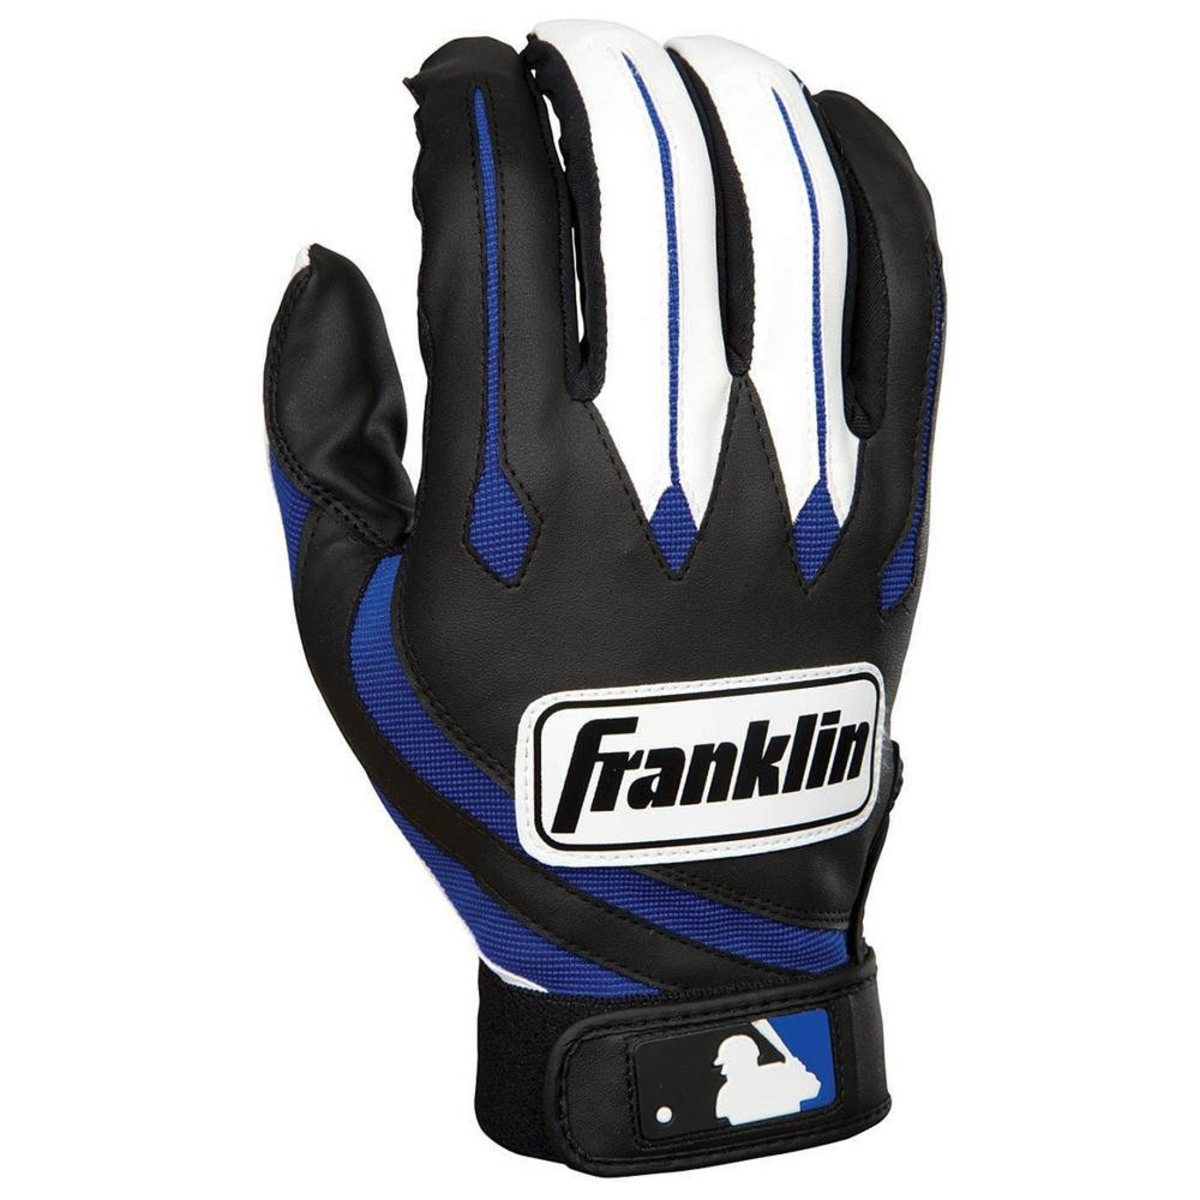 Batting gloves are a great stocking stuffer!